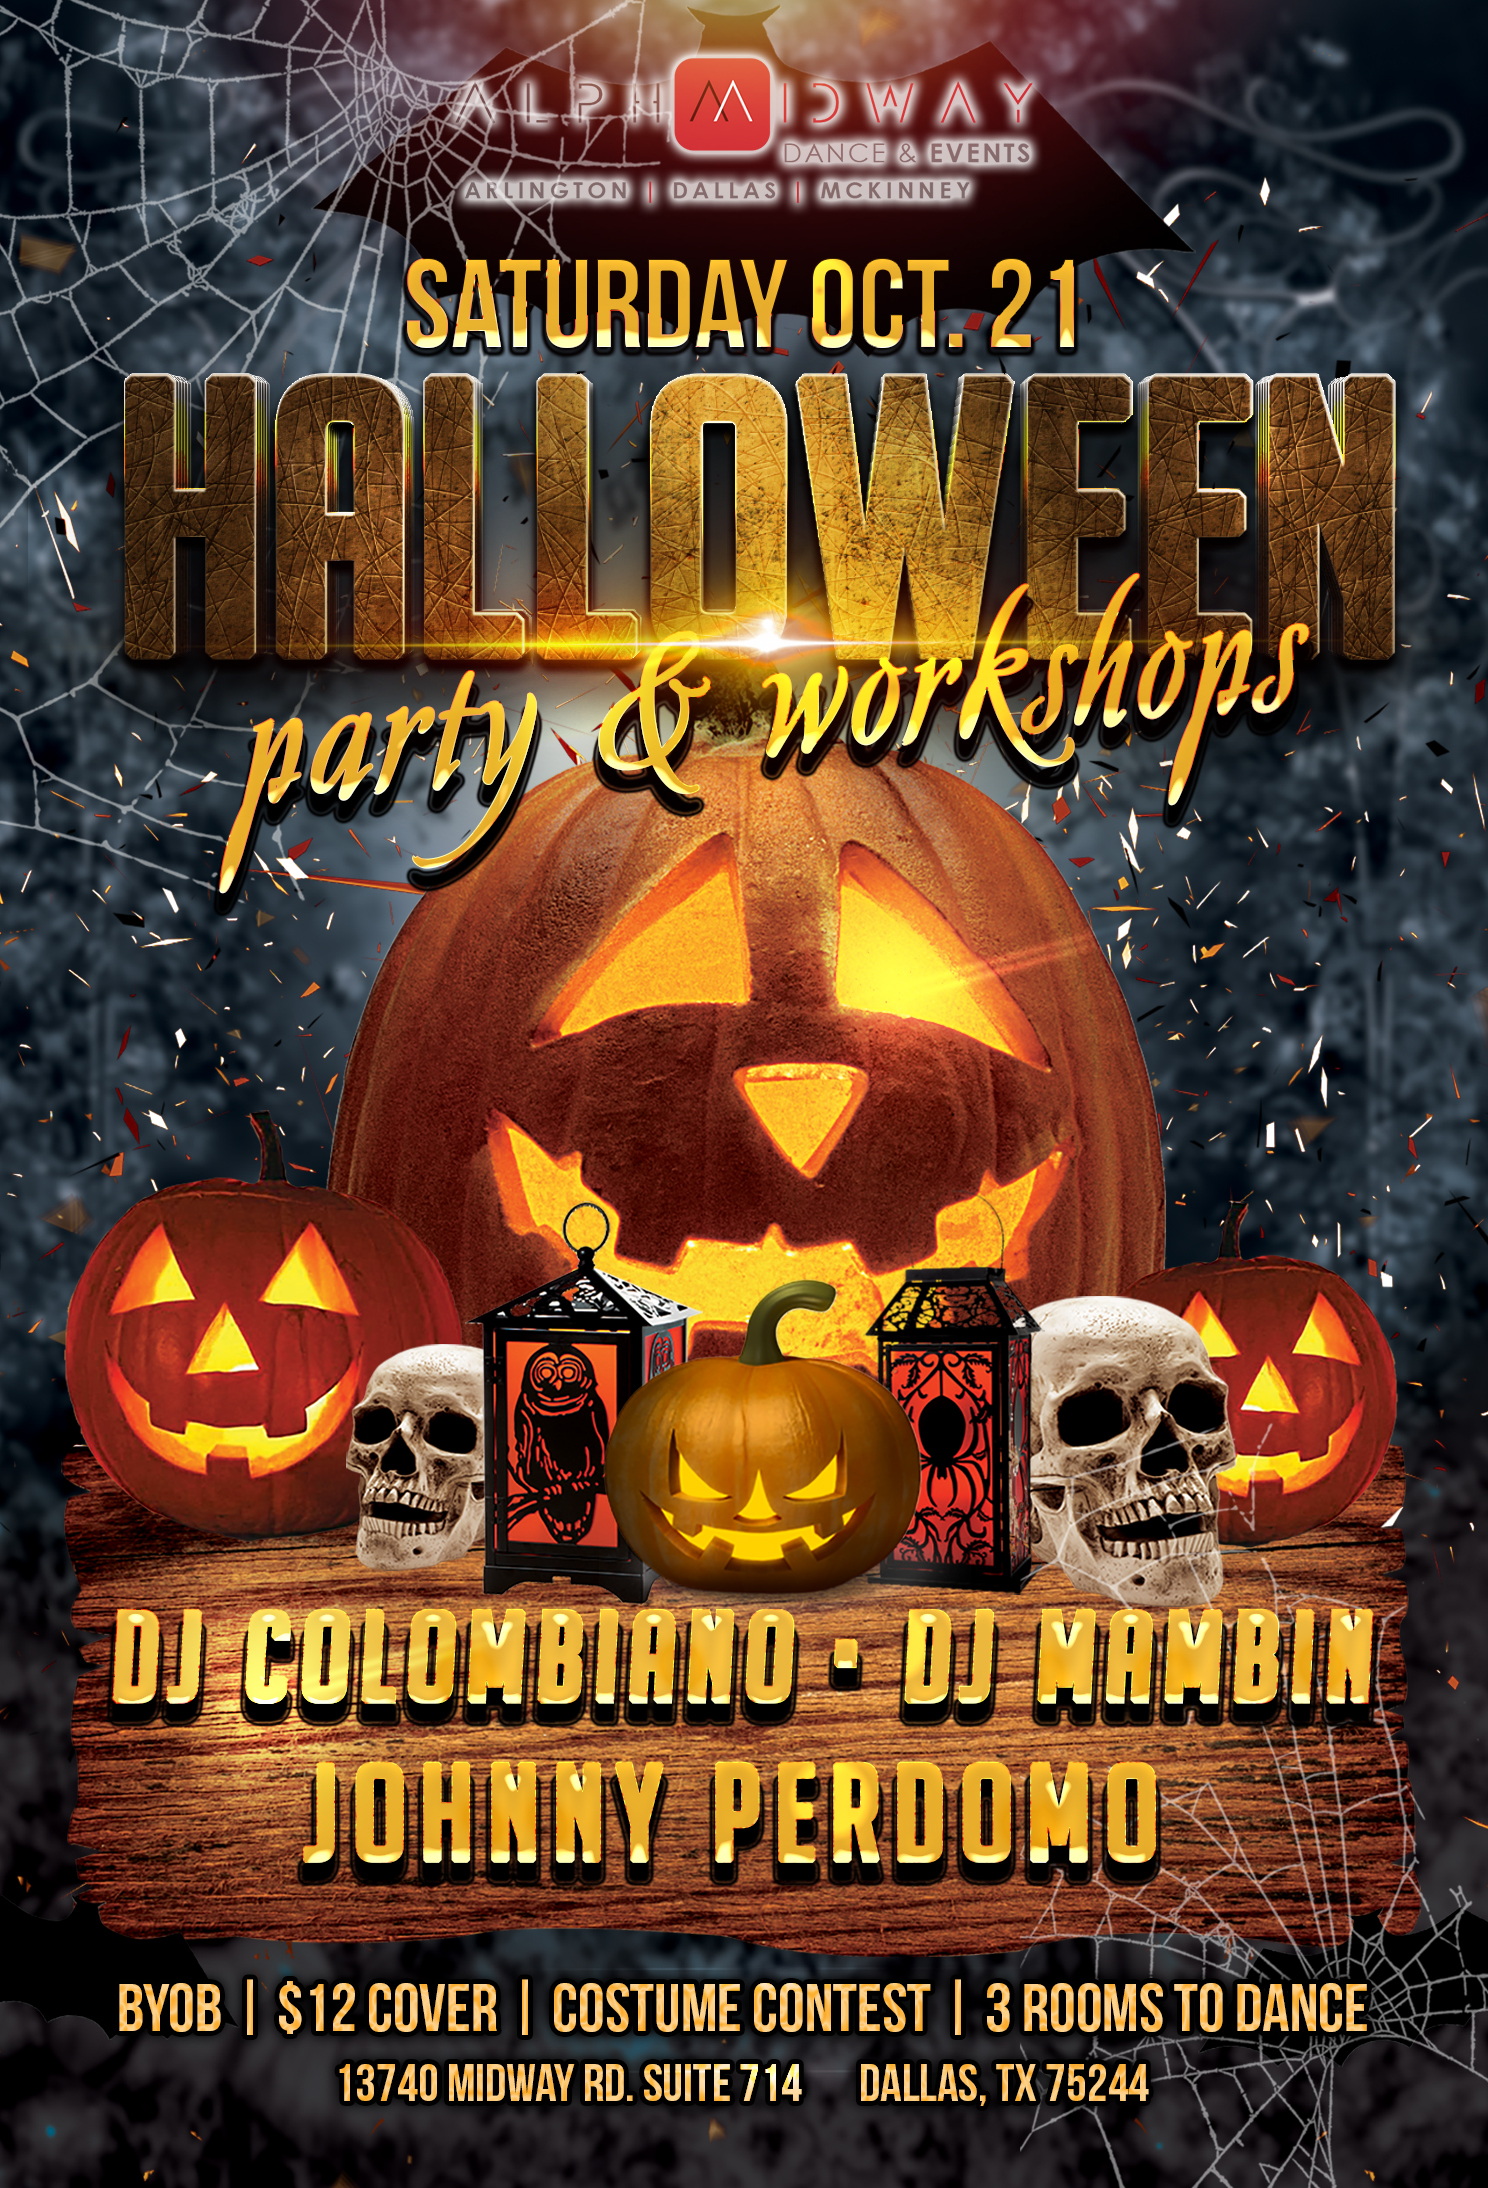 2017 halloween party & workshops – alpha midway dance studio in